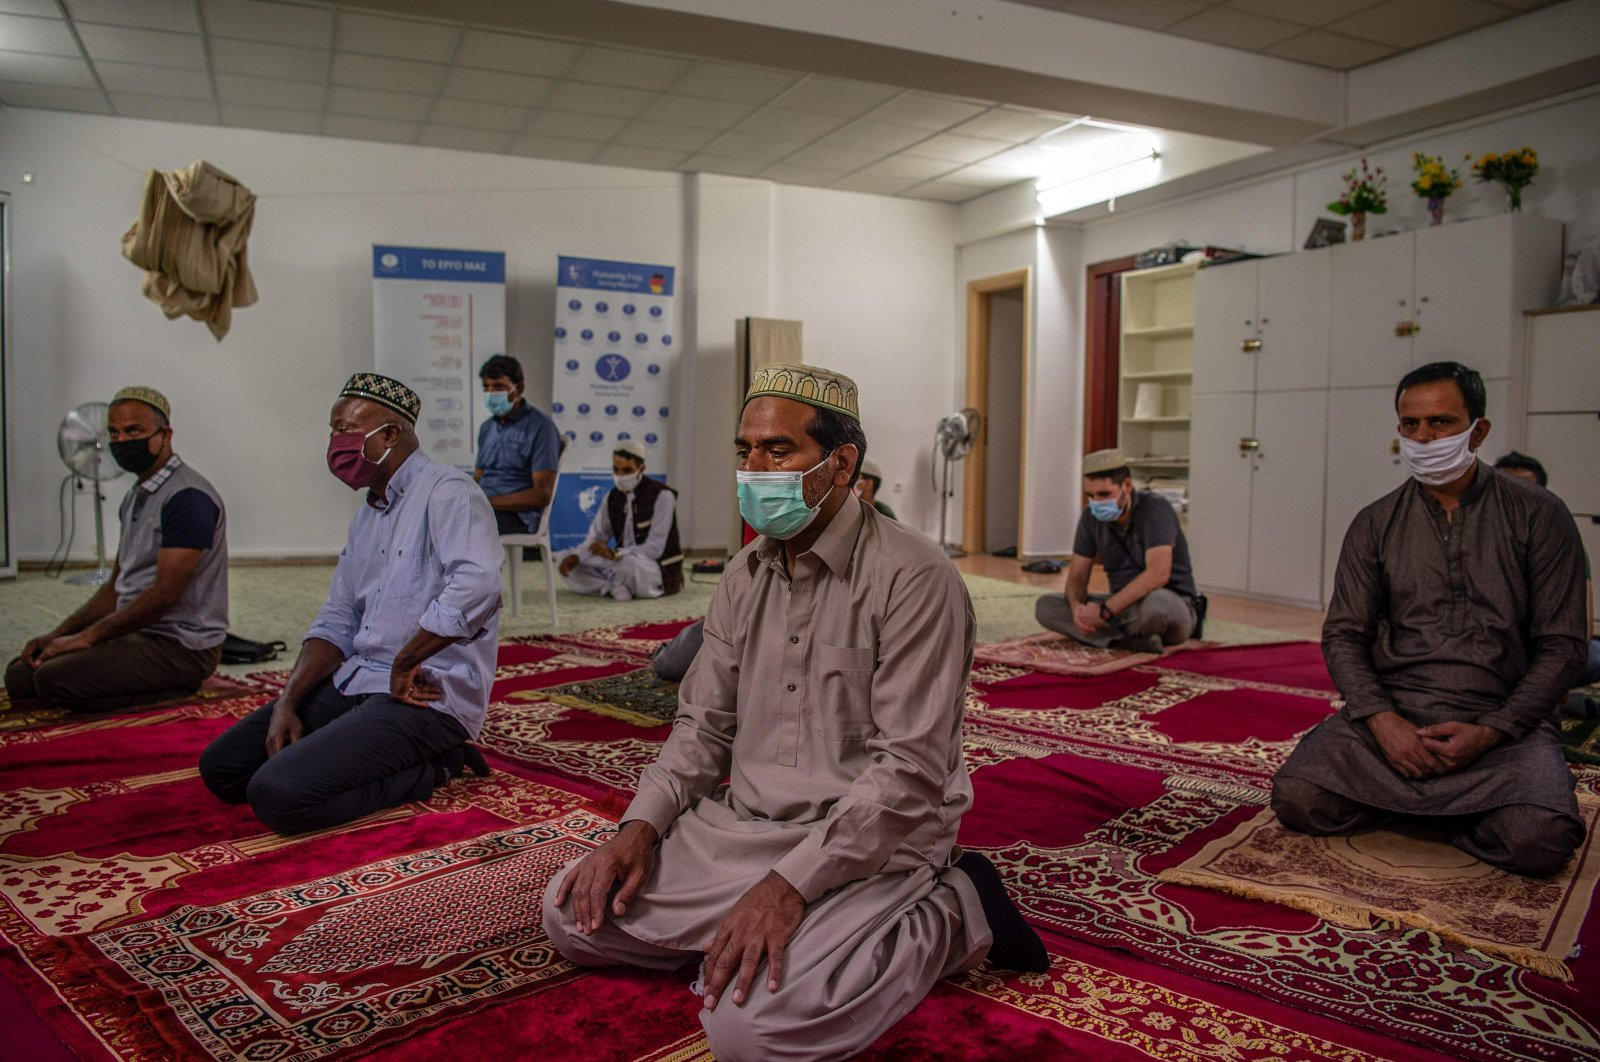 Muslims wear protective face masks as they pray at a mosque in Athens, Greece, July 31, 2020. (AFP Photo)